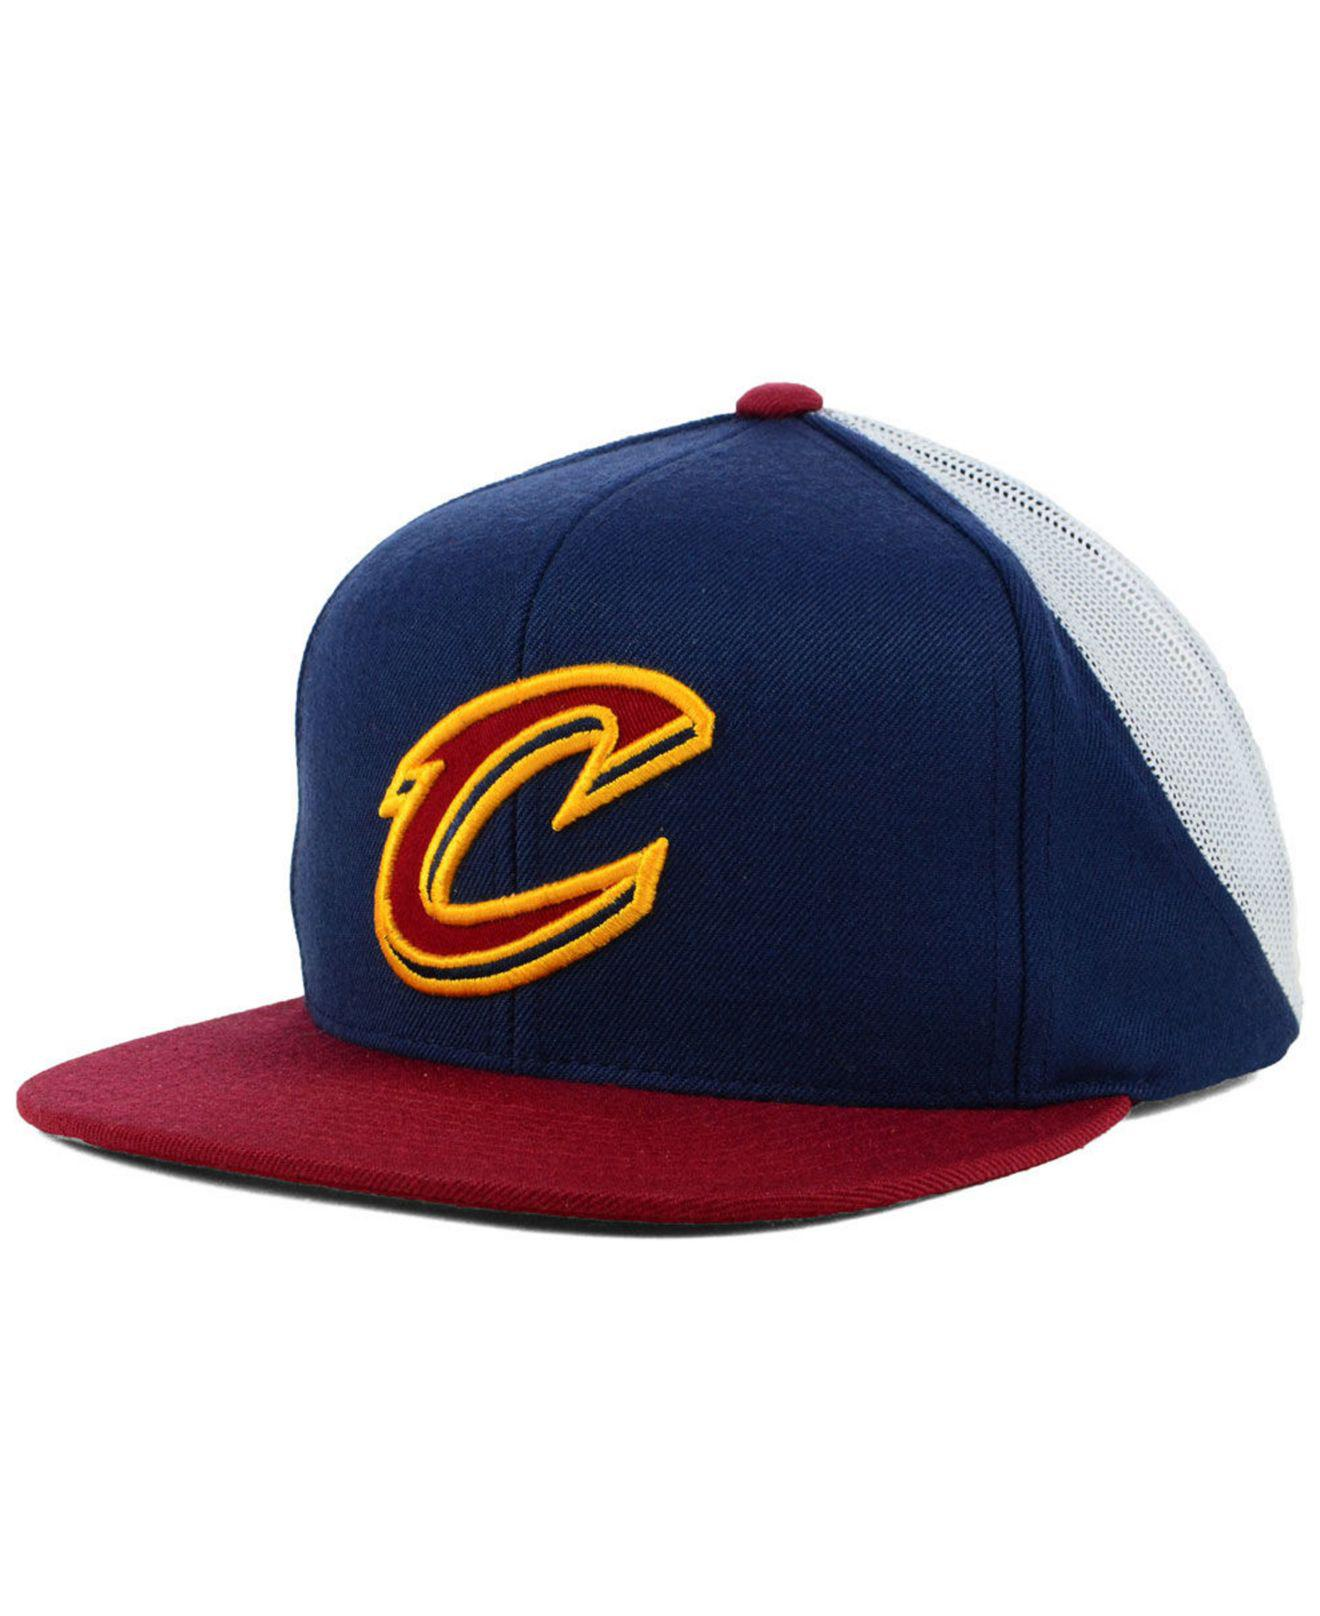 2953440a ... sale mitchell ness. mens blue cleveland cavaliers curved mesh snapback  21453 5b1f6